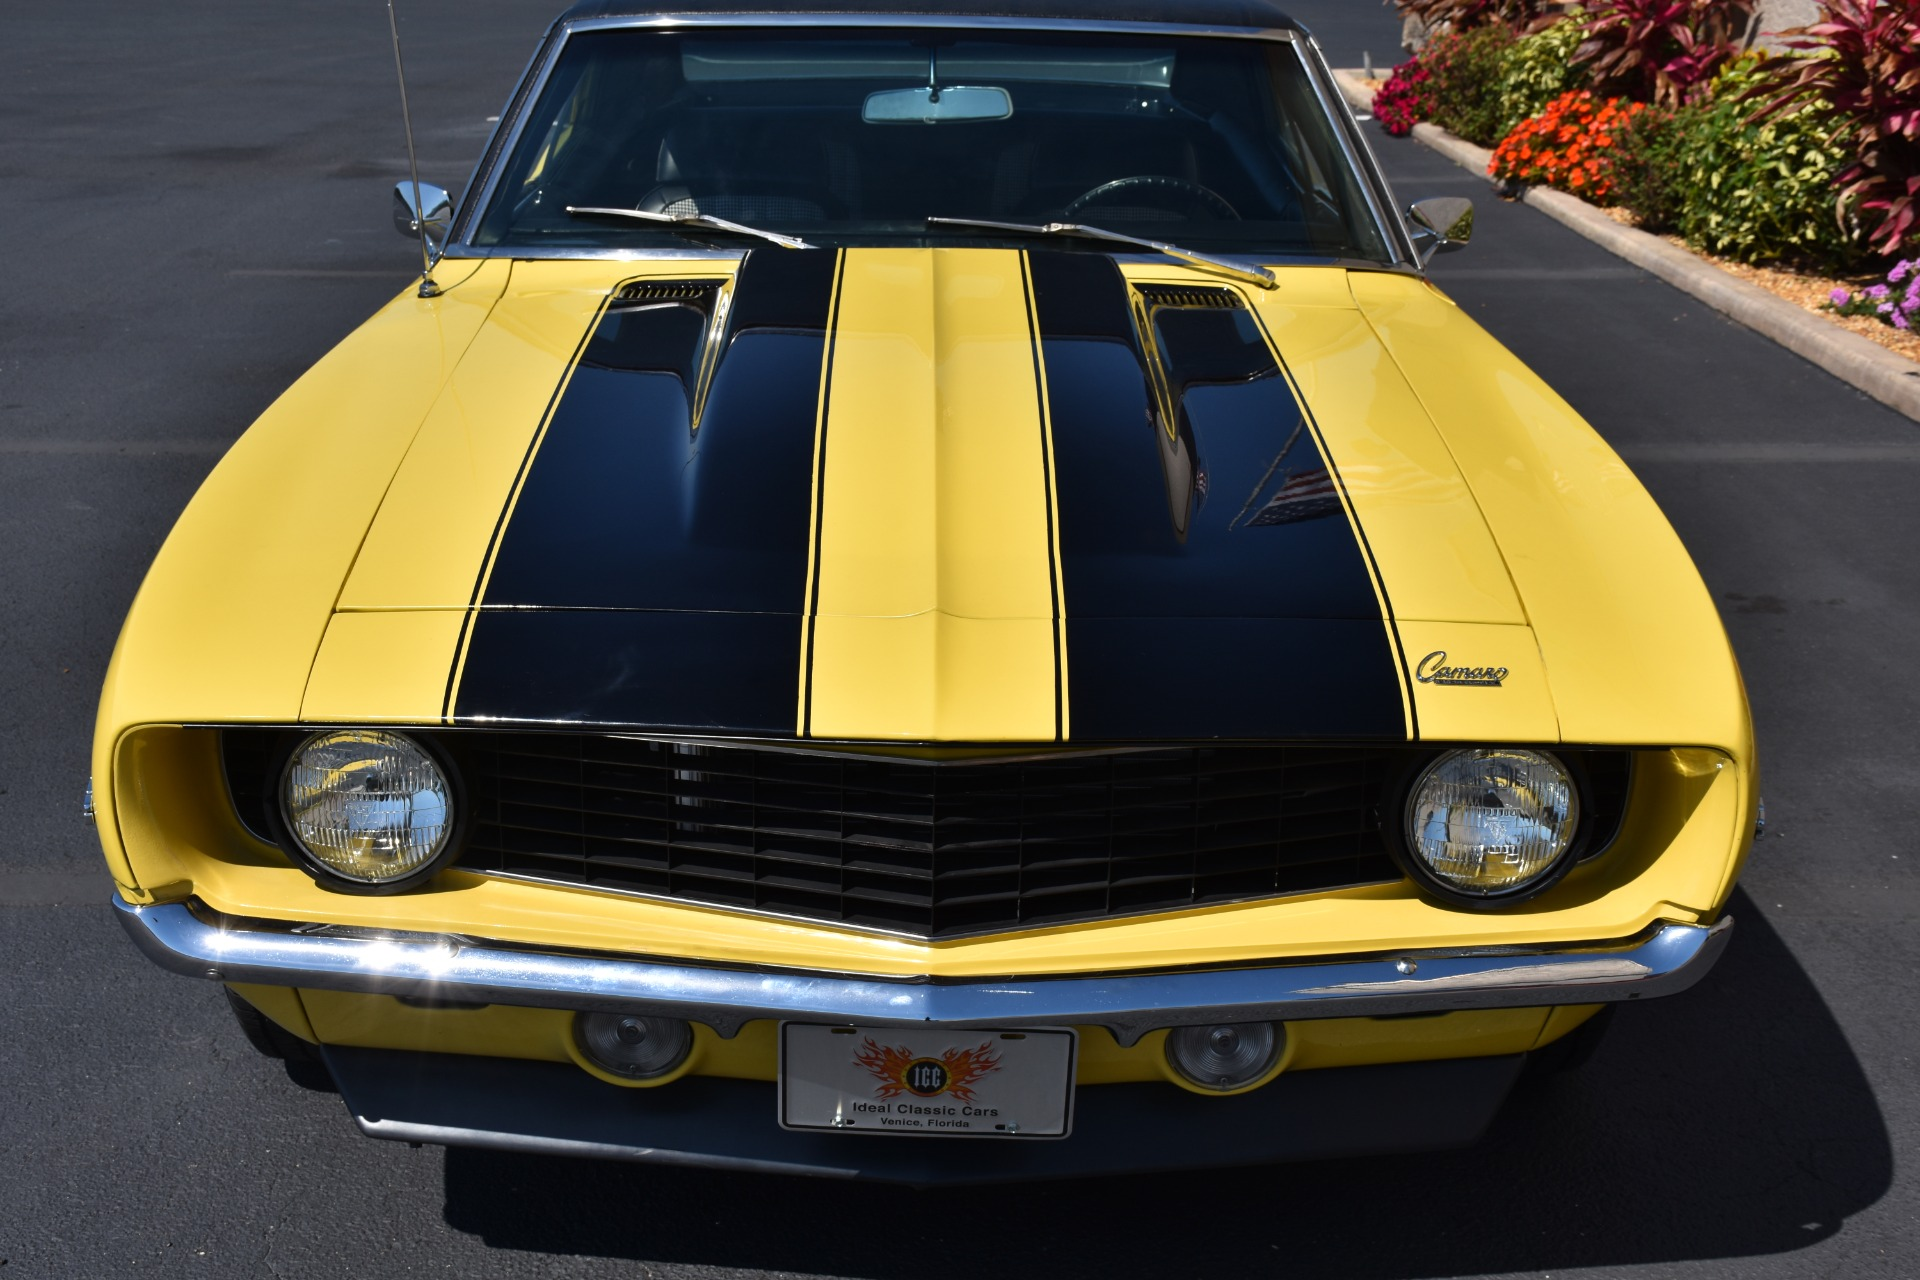 1969 Chevy Truck For Sale >> 1969 Daytona Yellow Chevy Camaro For Sale